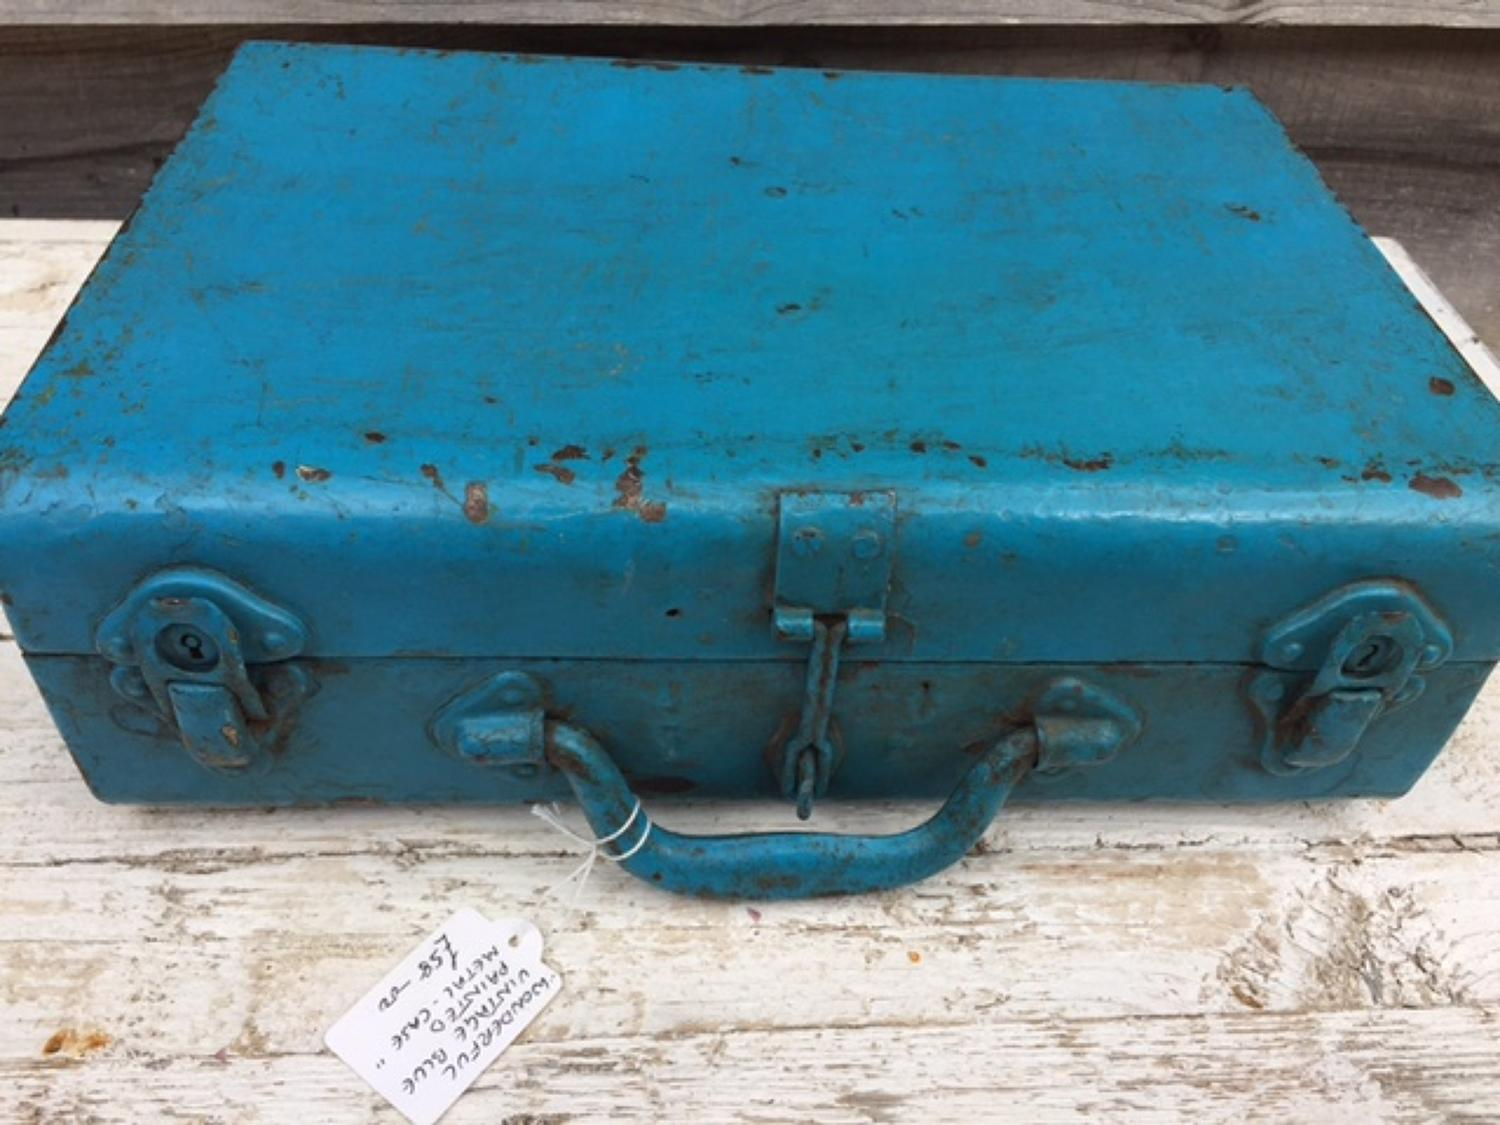 Vintage Metal Briefcase in original Blue Paint